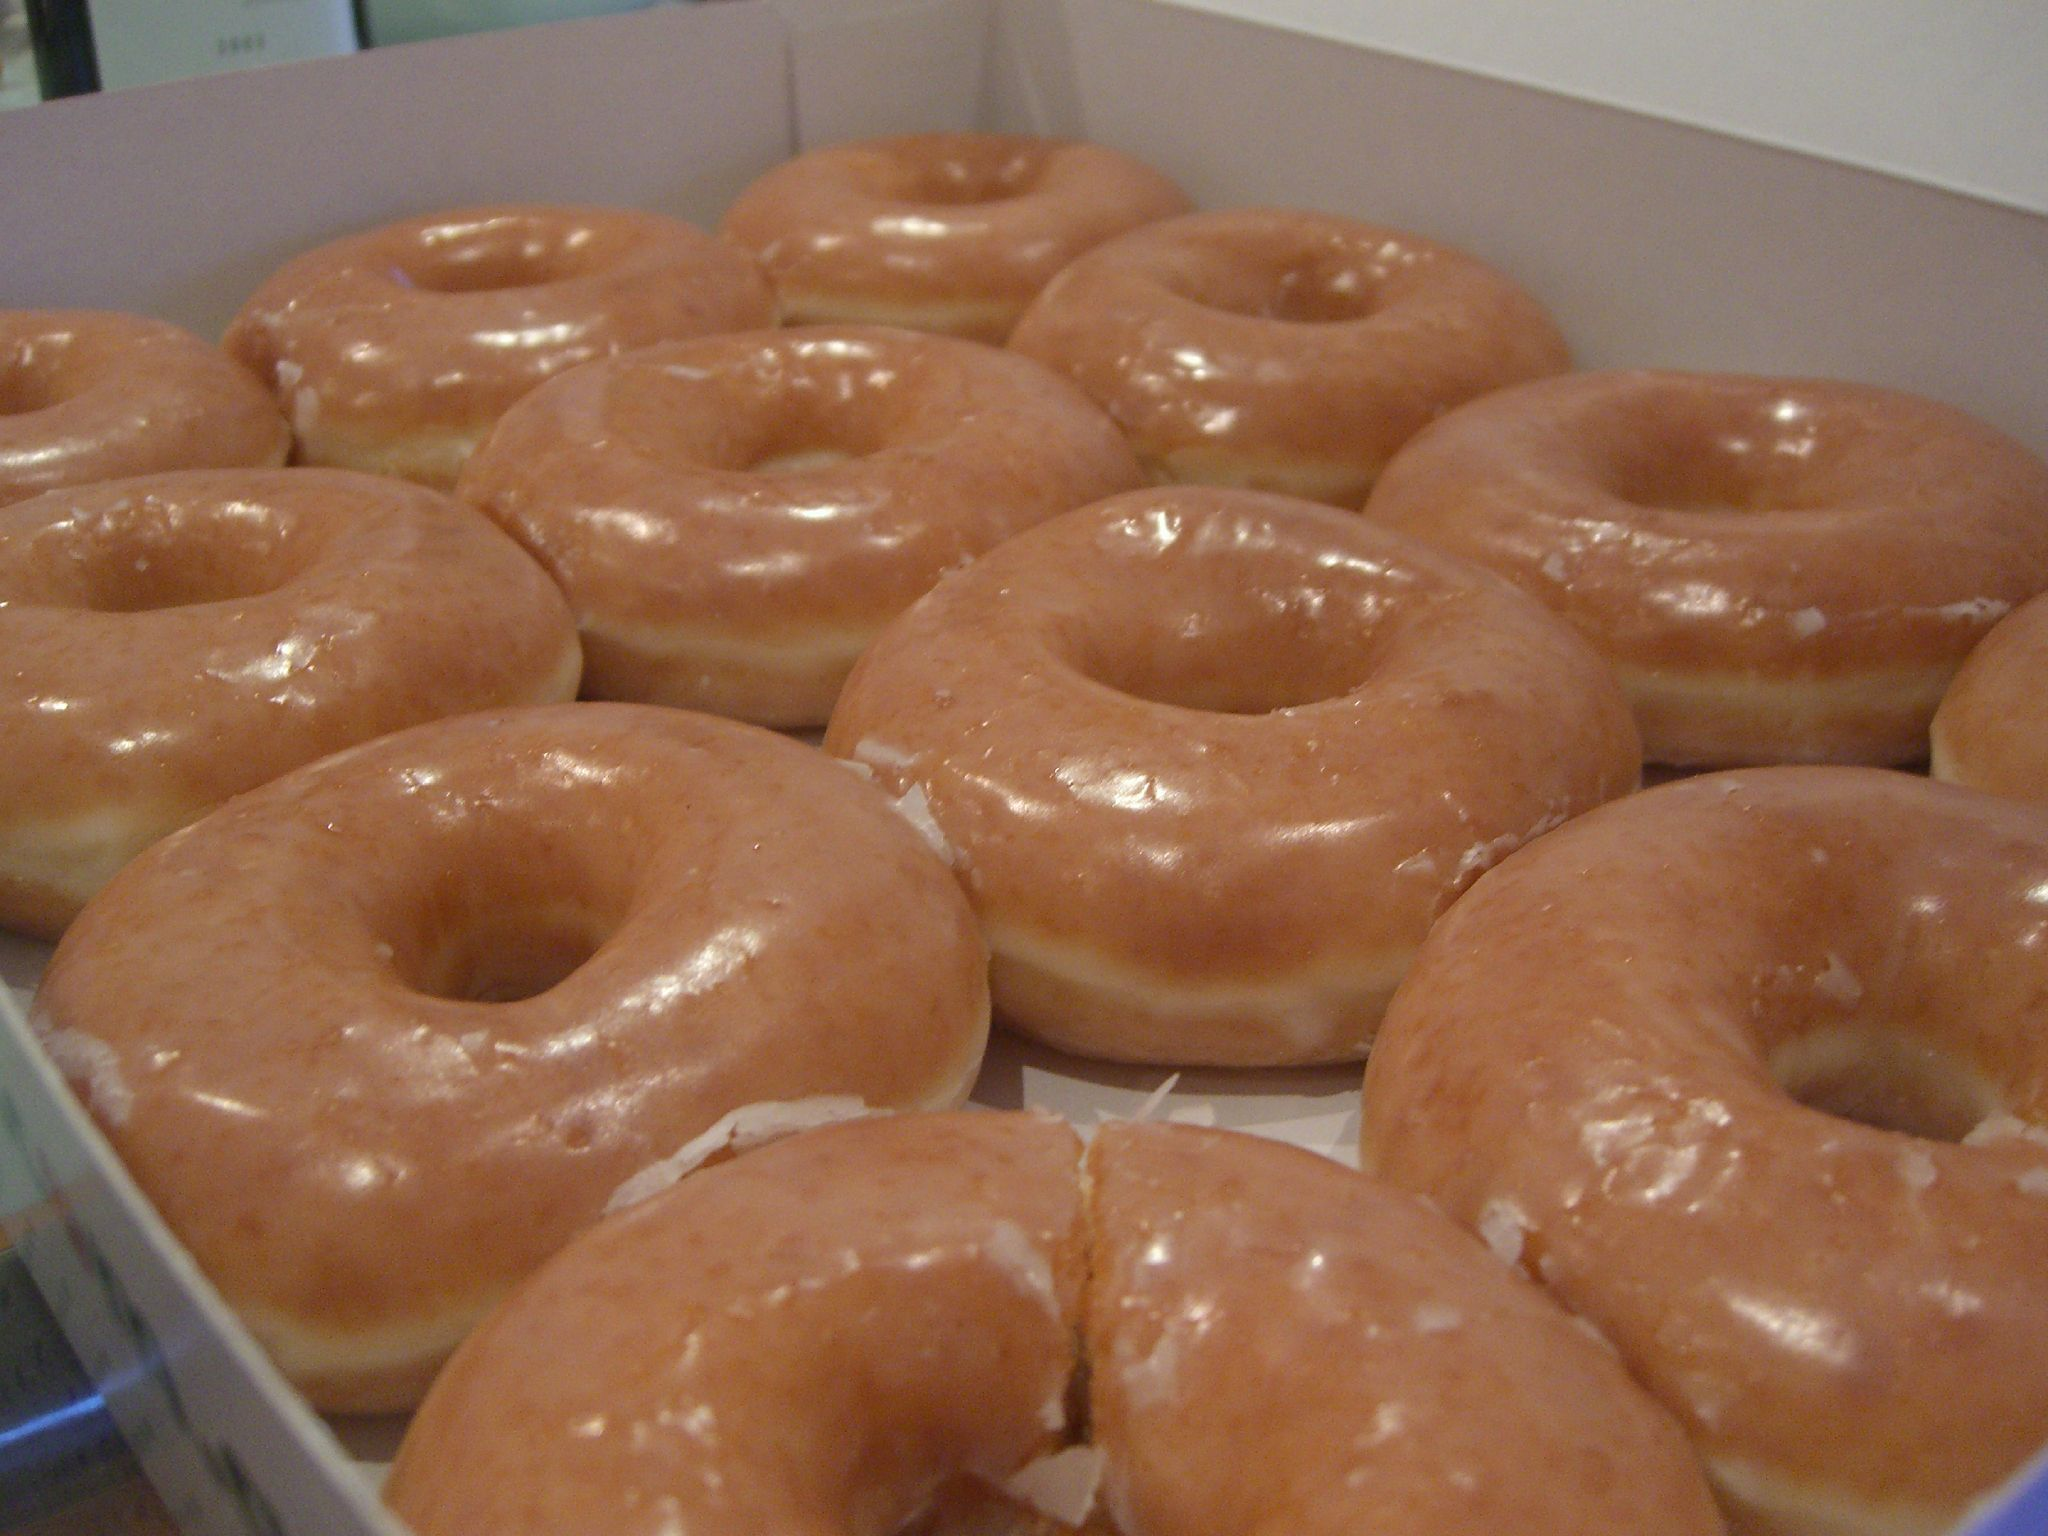 Krispy Kreme is giving away free donuts next week for basically the best reason ever